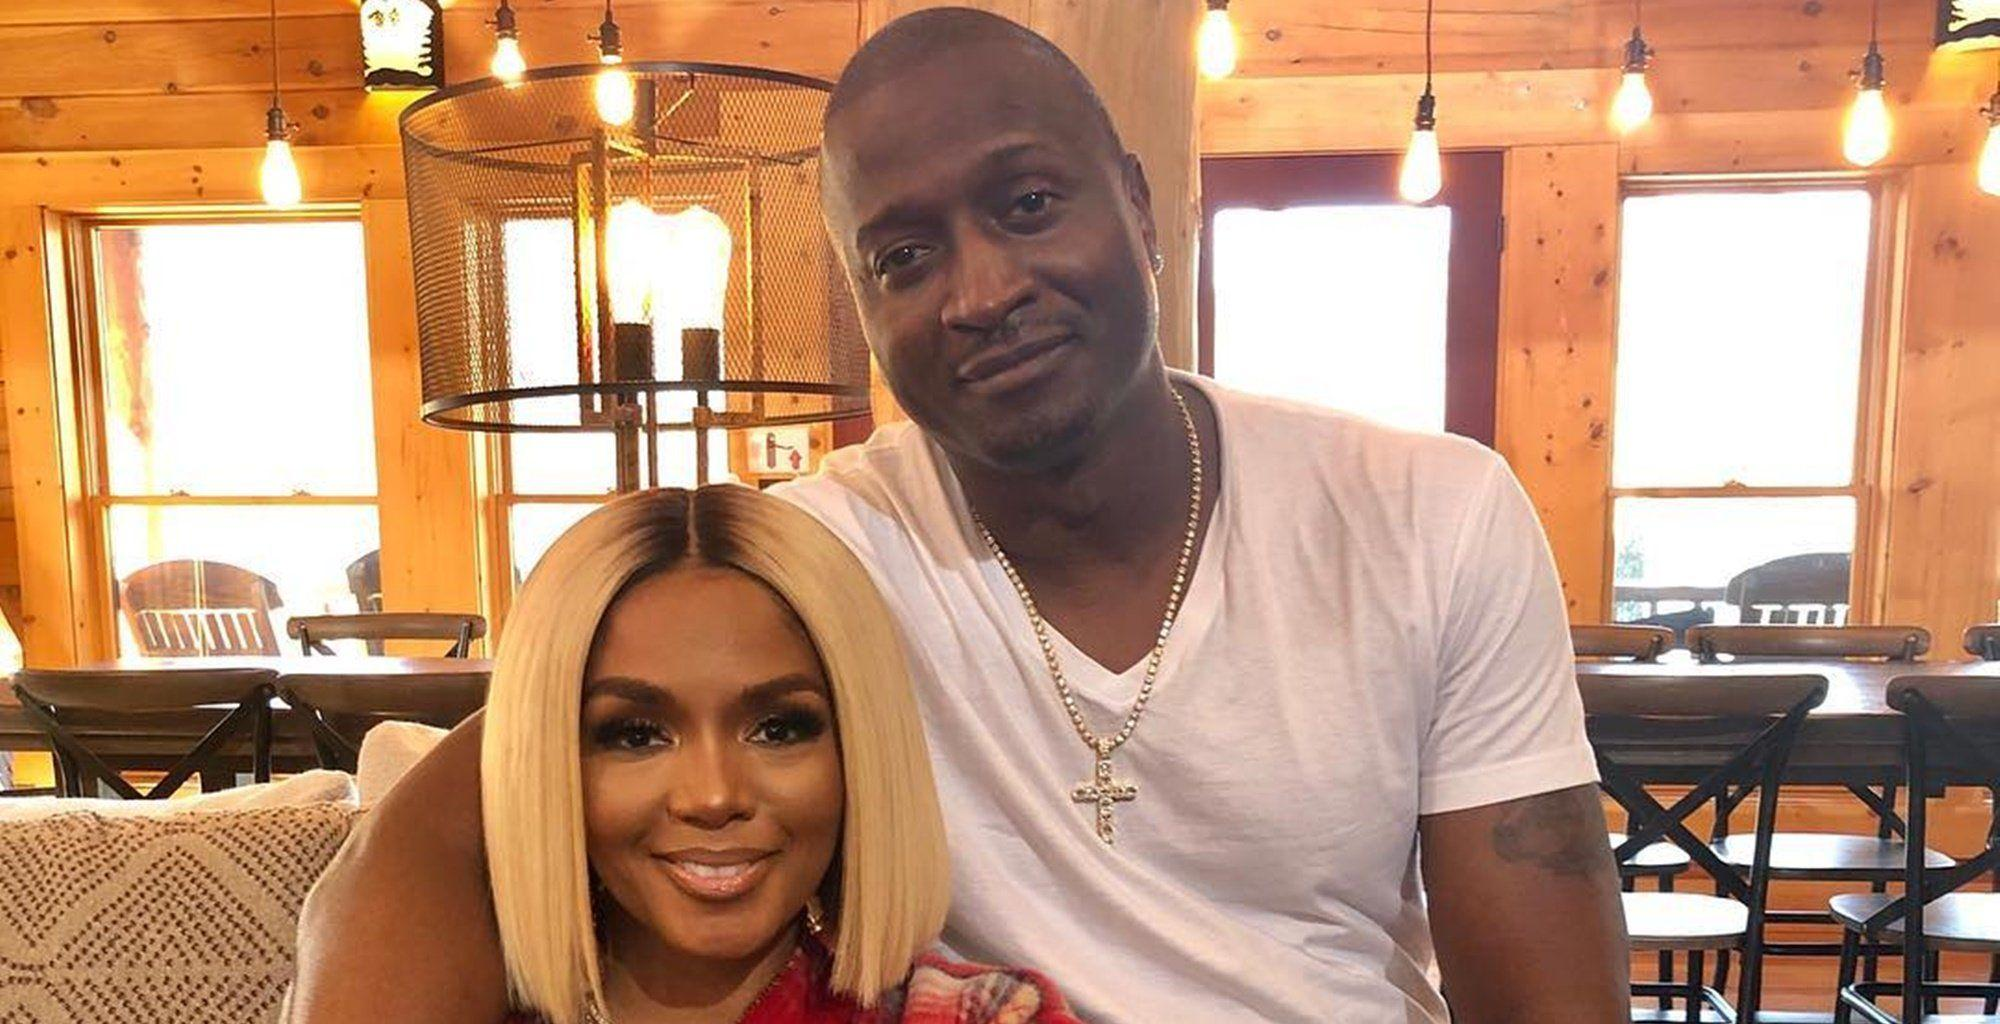 Rasheeda Frost's Latest Photo With Kirk Frost In Which He Touches Her Chest Has Fans Gushing Over Them